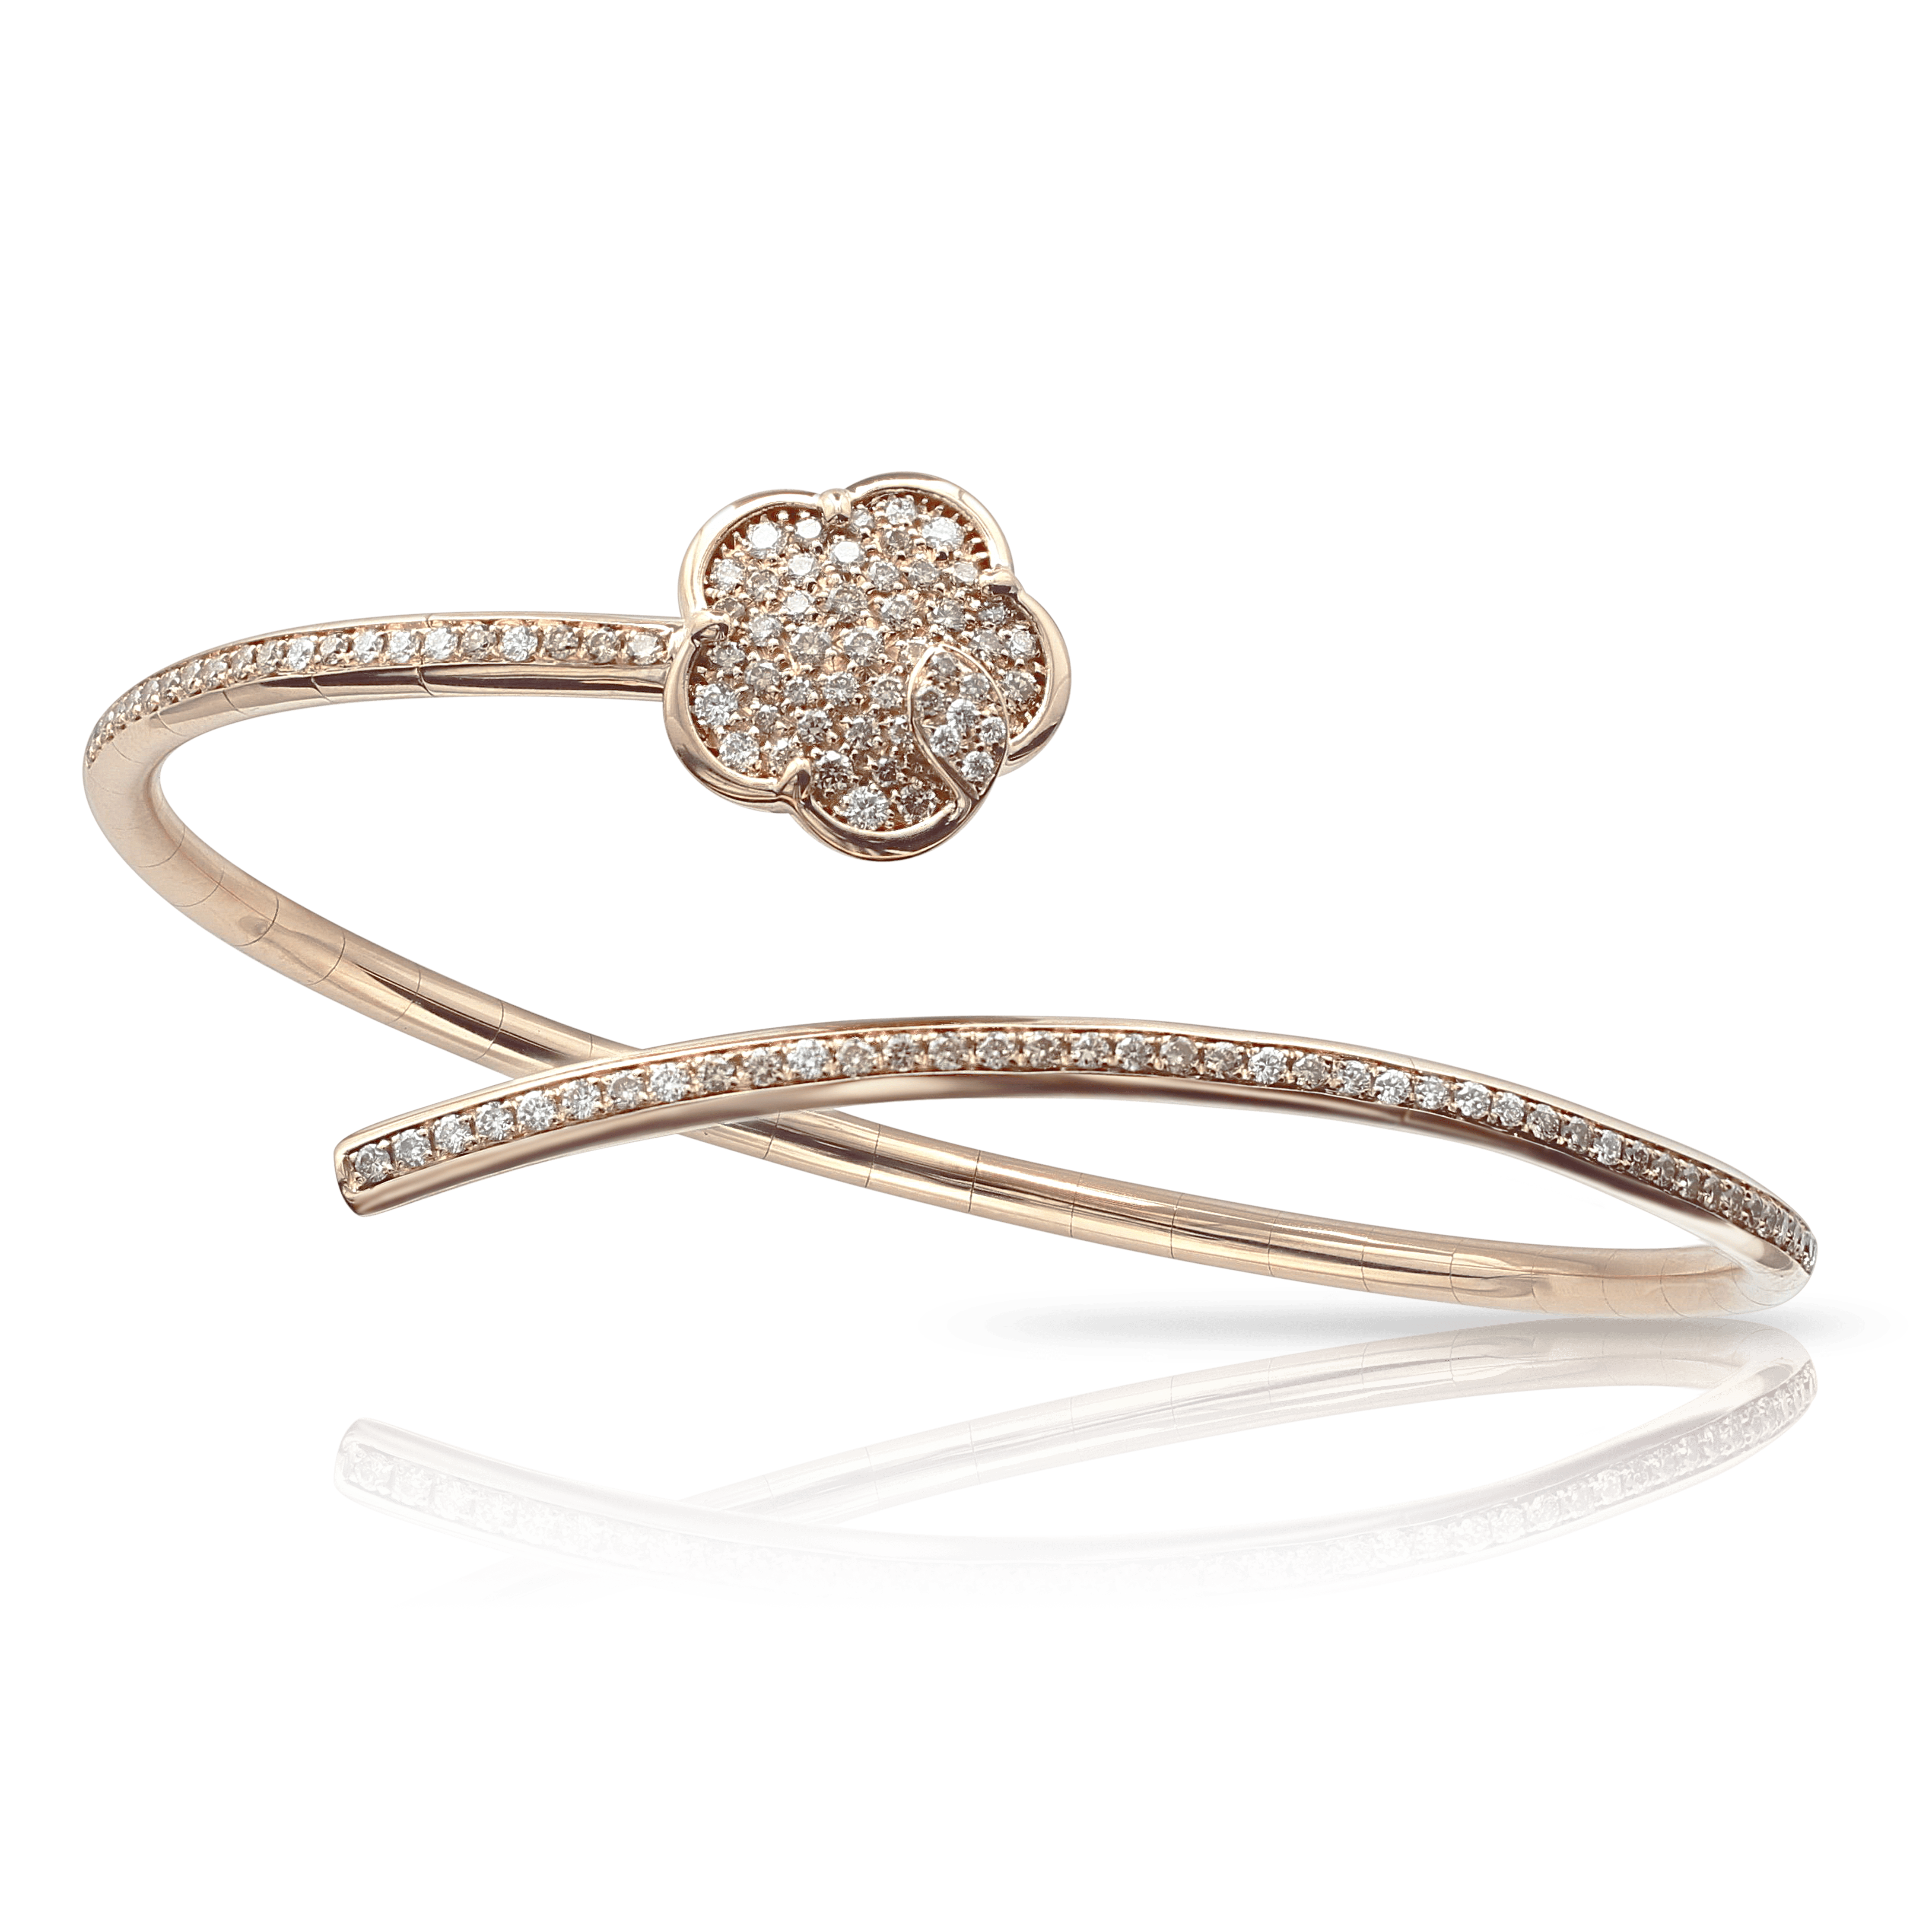 18k Rose Gold Joli Bracelet with White and Champagne Diamonds